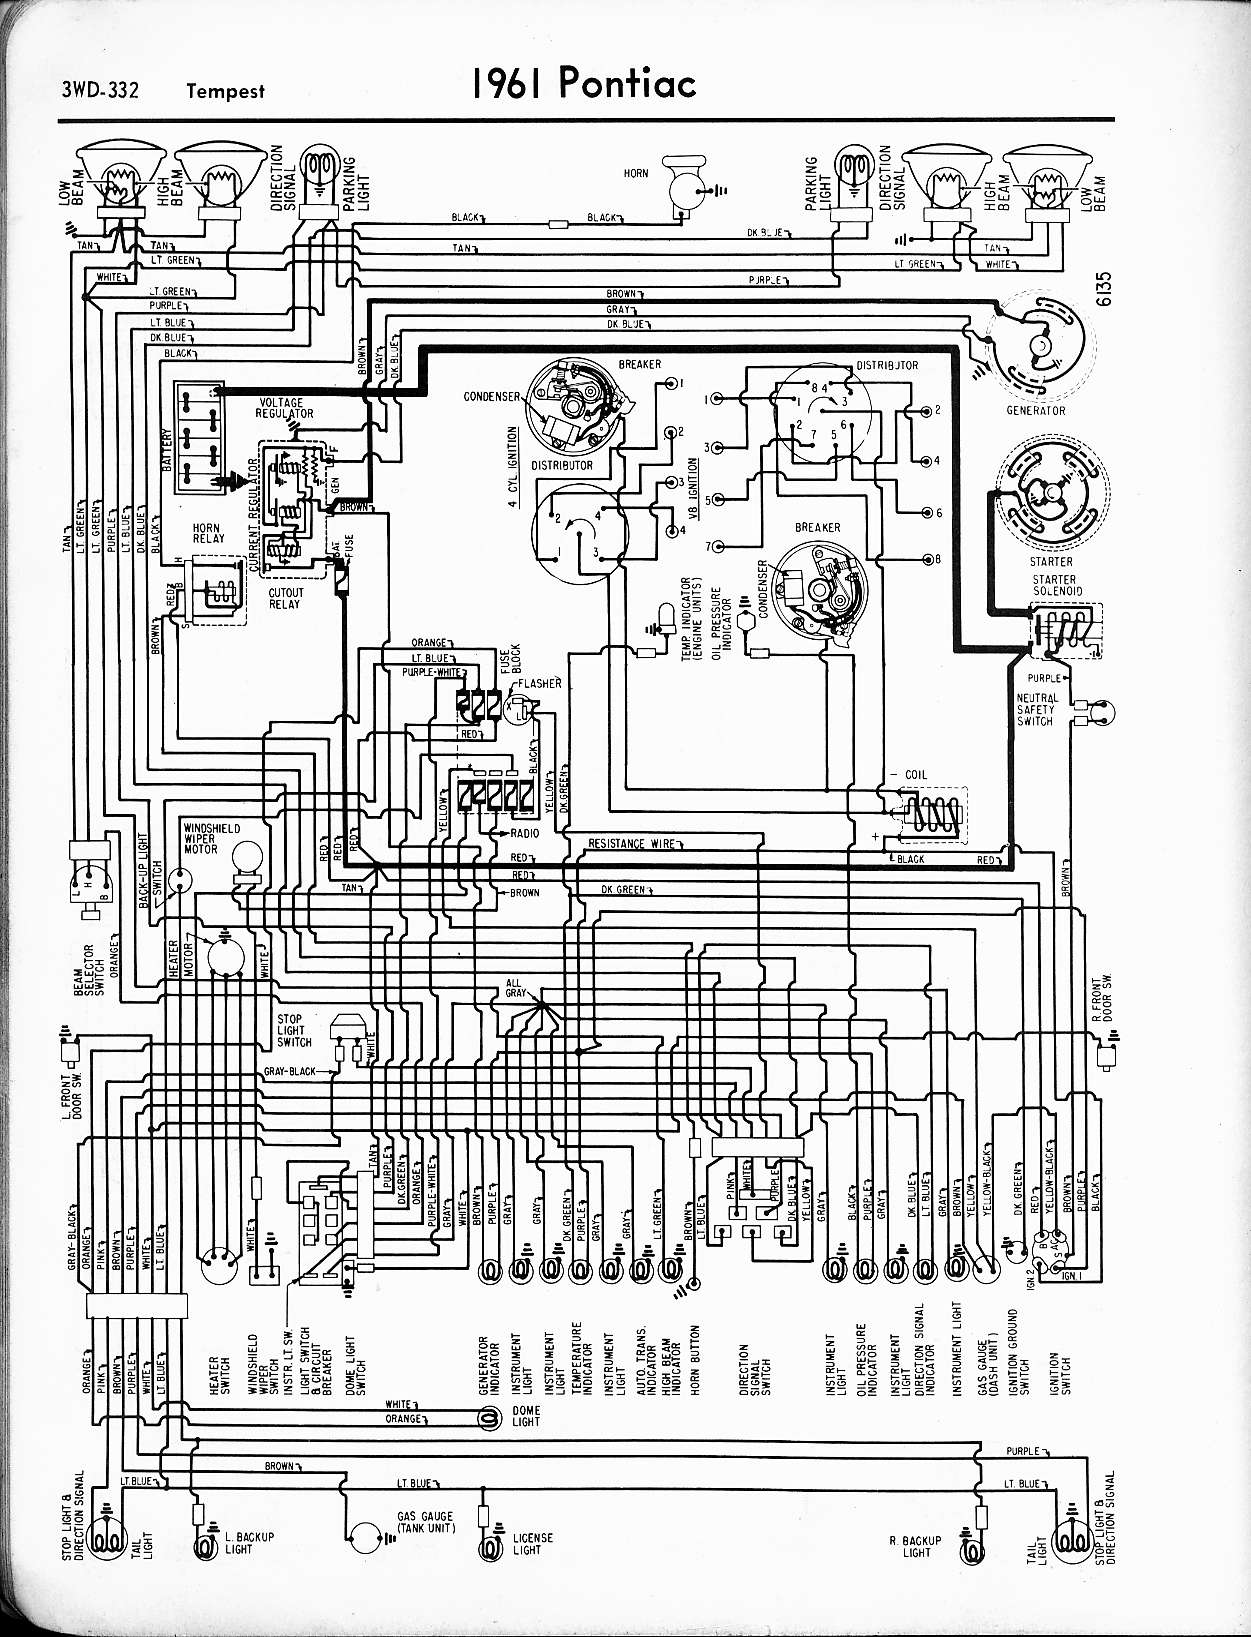 1972 Pontiac Gto Wiring Diagram Reinvent Your 1967 Chevy Nova Pictures U2022 Rh Mapavick Co Uk Monte Carlo